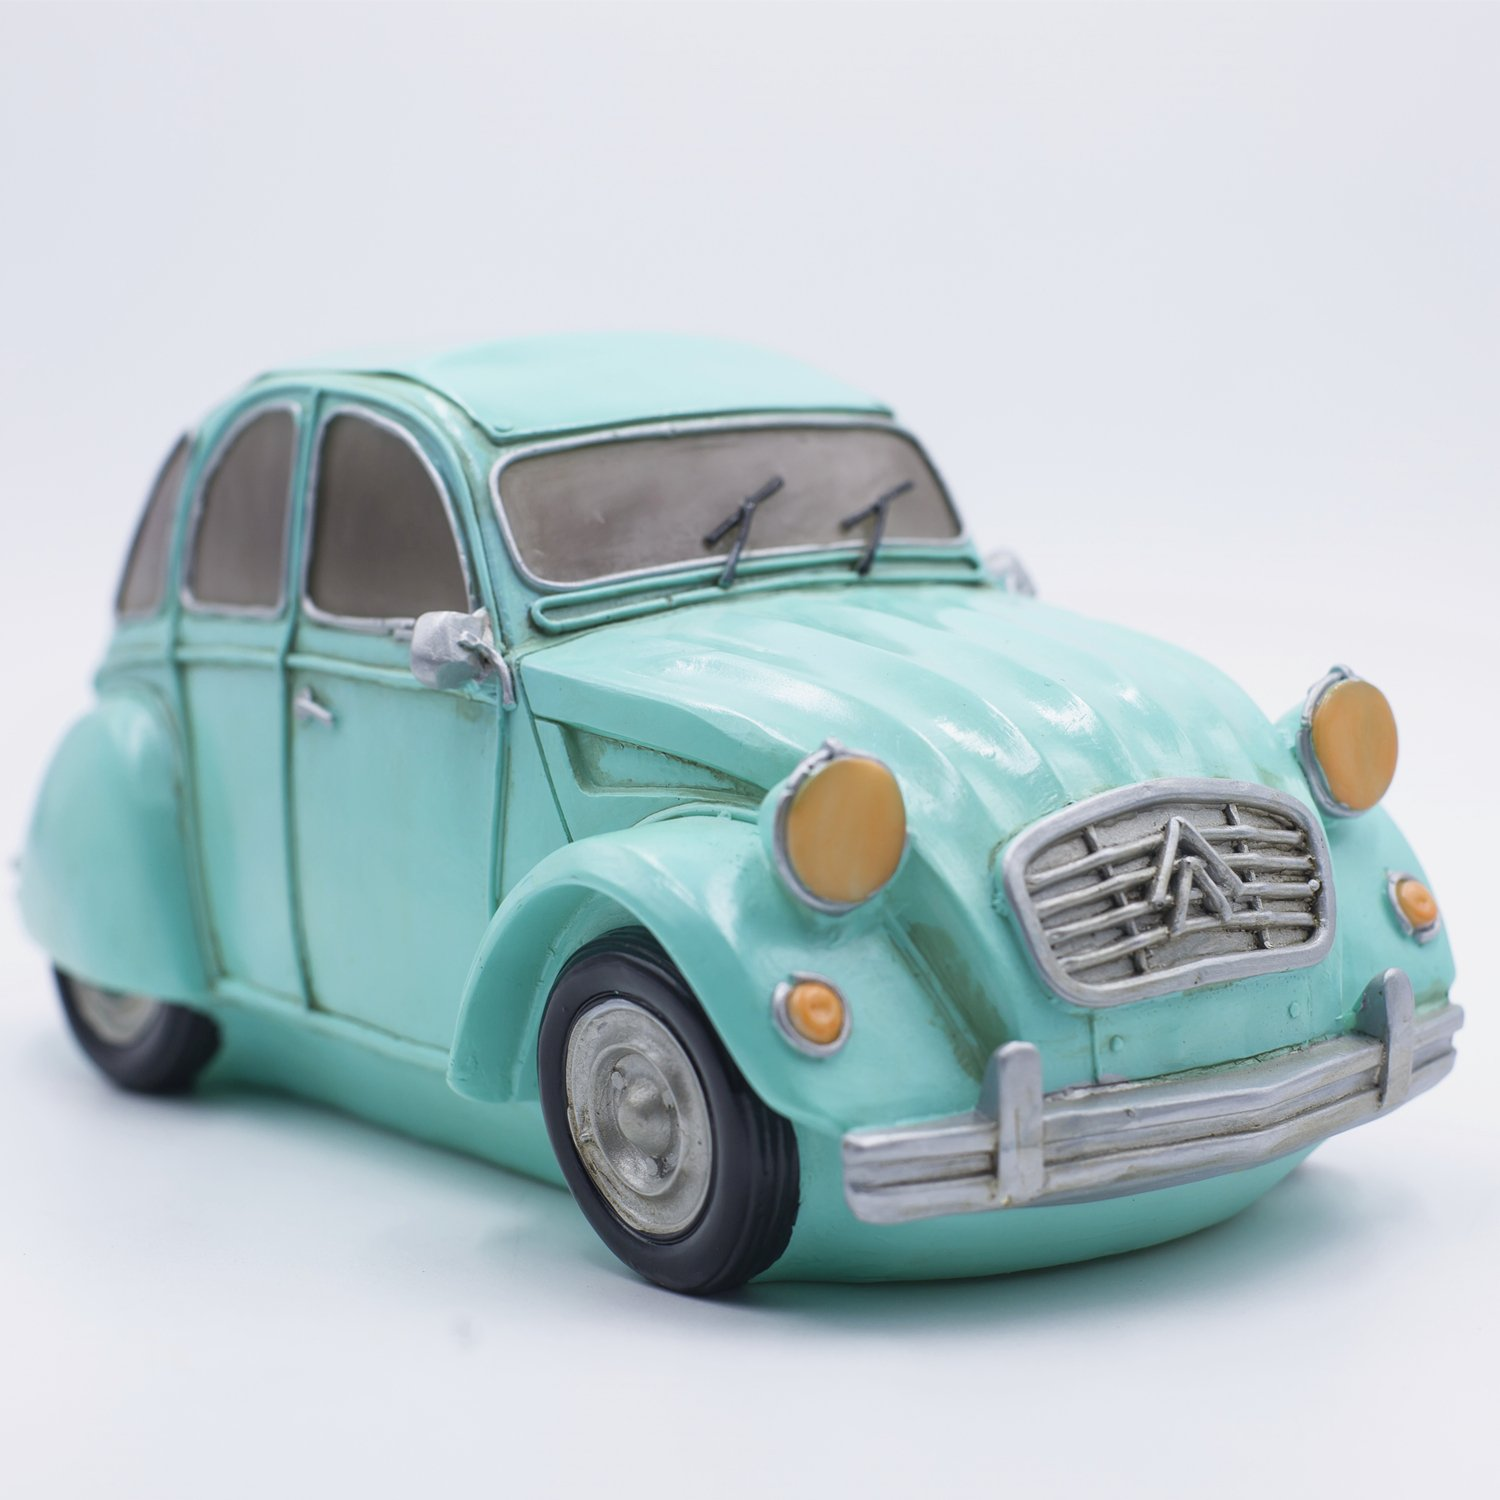 Amazlab Vintage Car Lamp Green Citroen Bedside Lantern, Warm White Glow, USB Or Battery Powered, with 4 Hours Timer Shaped Table Night